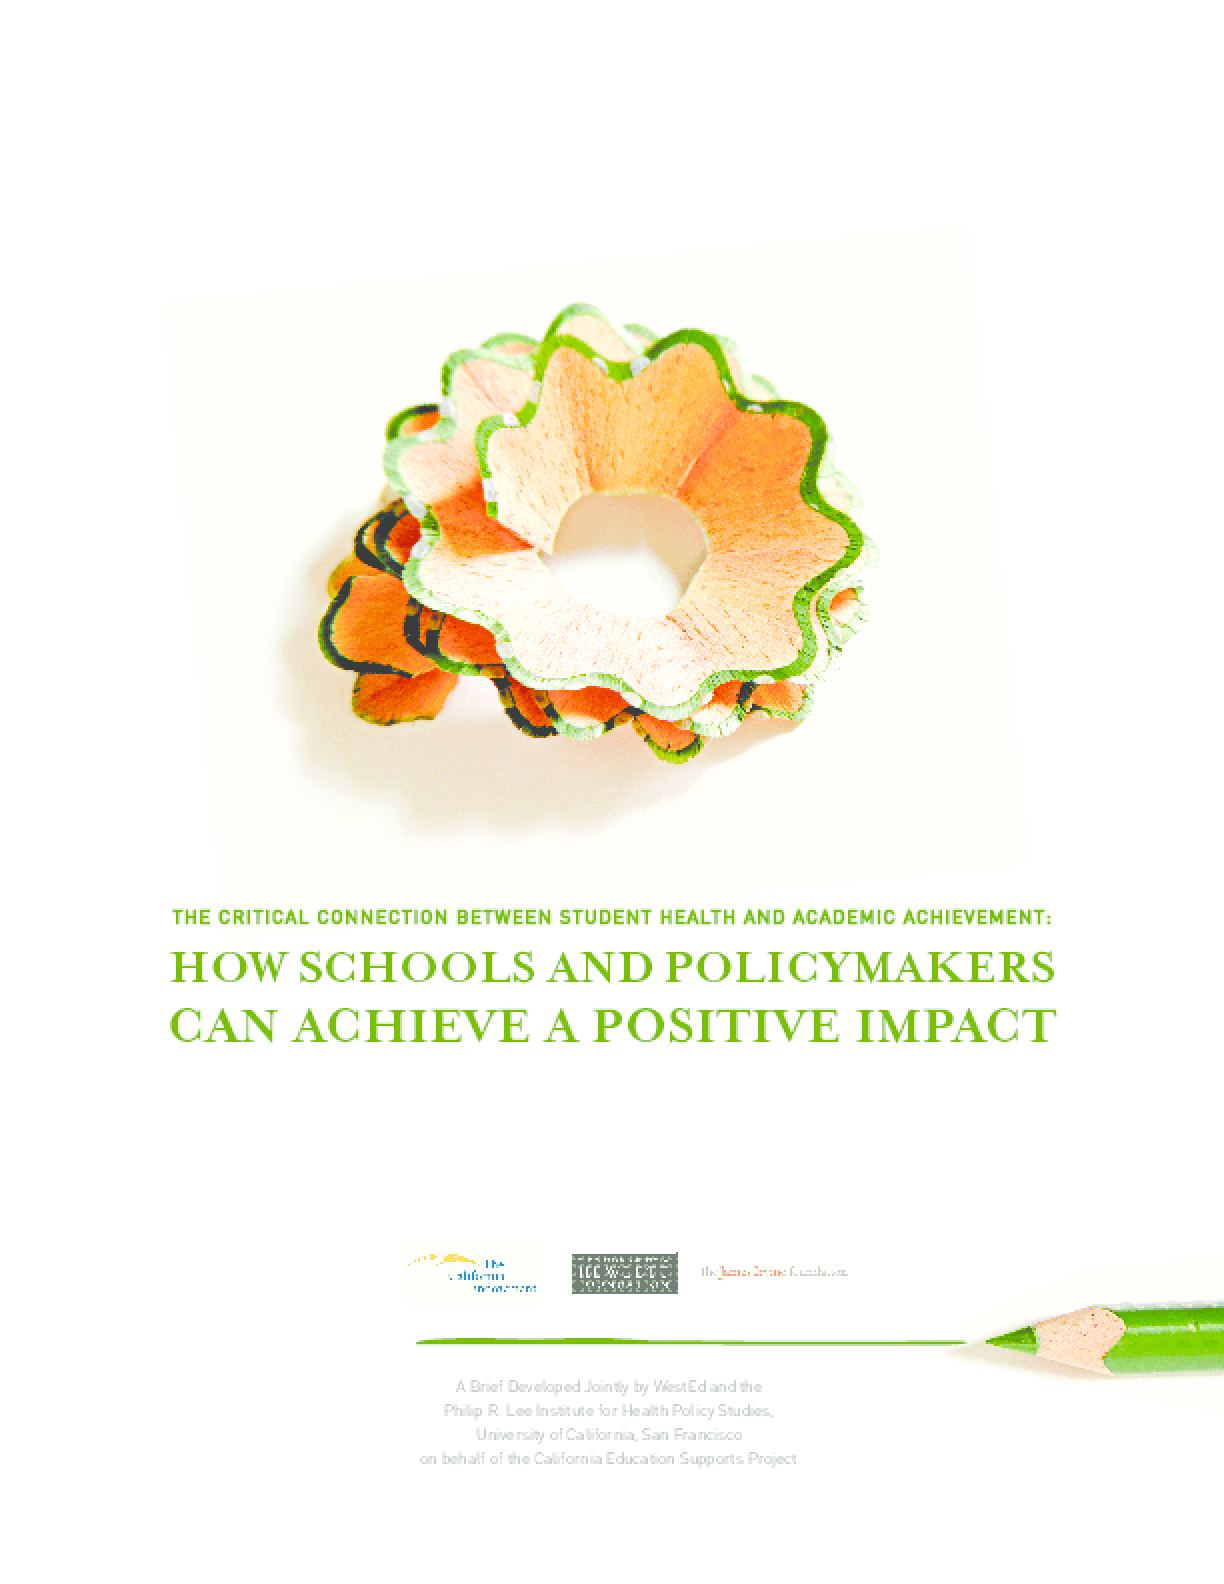 The Critical Connection Between Student Health and Academic Achievement: How Schools and Policymakers Can Achieve a Positive Impact